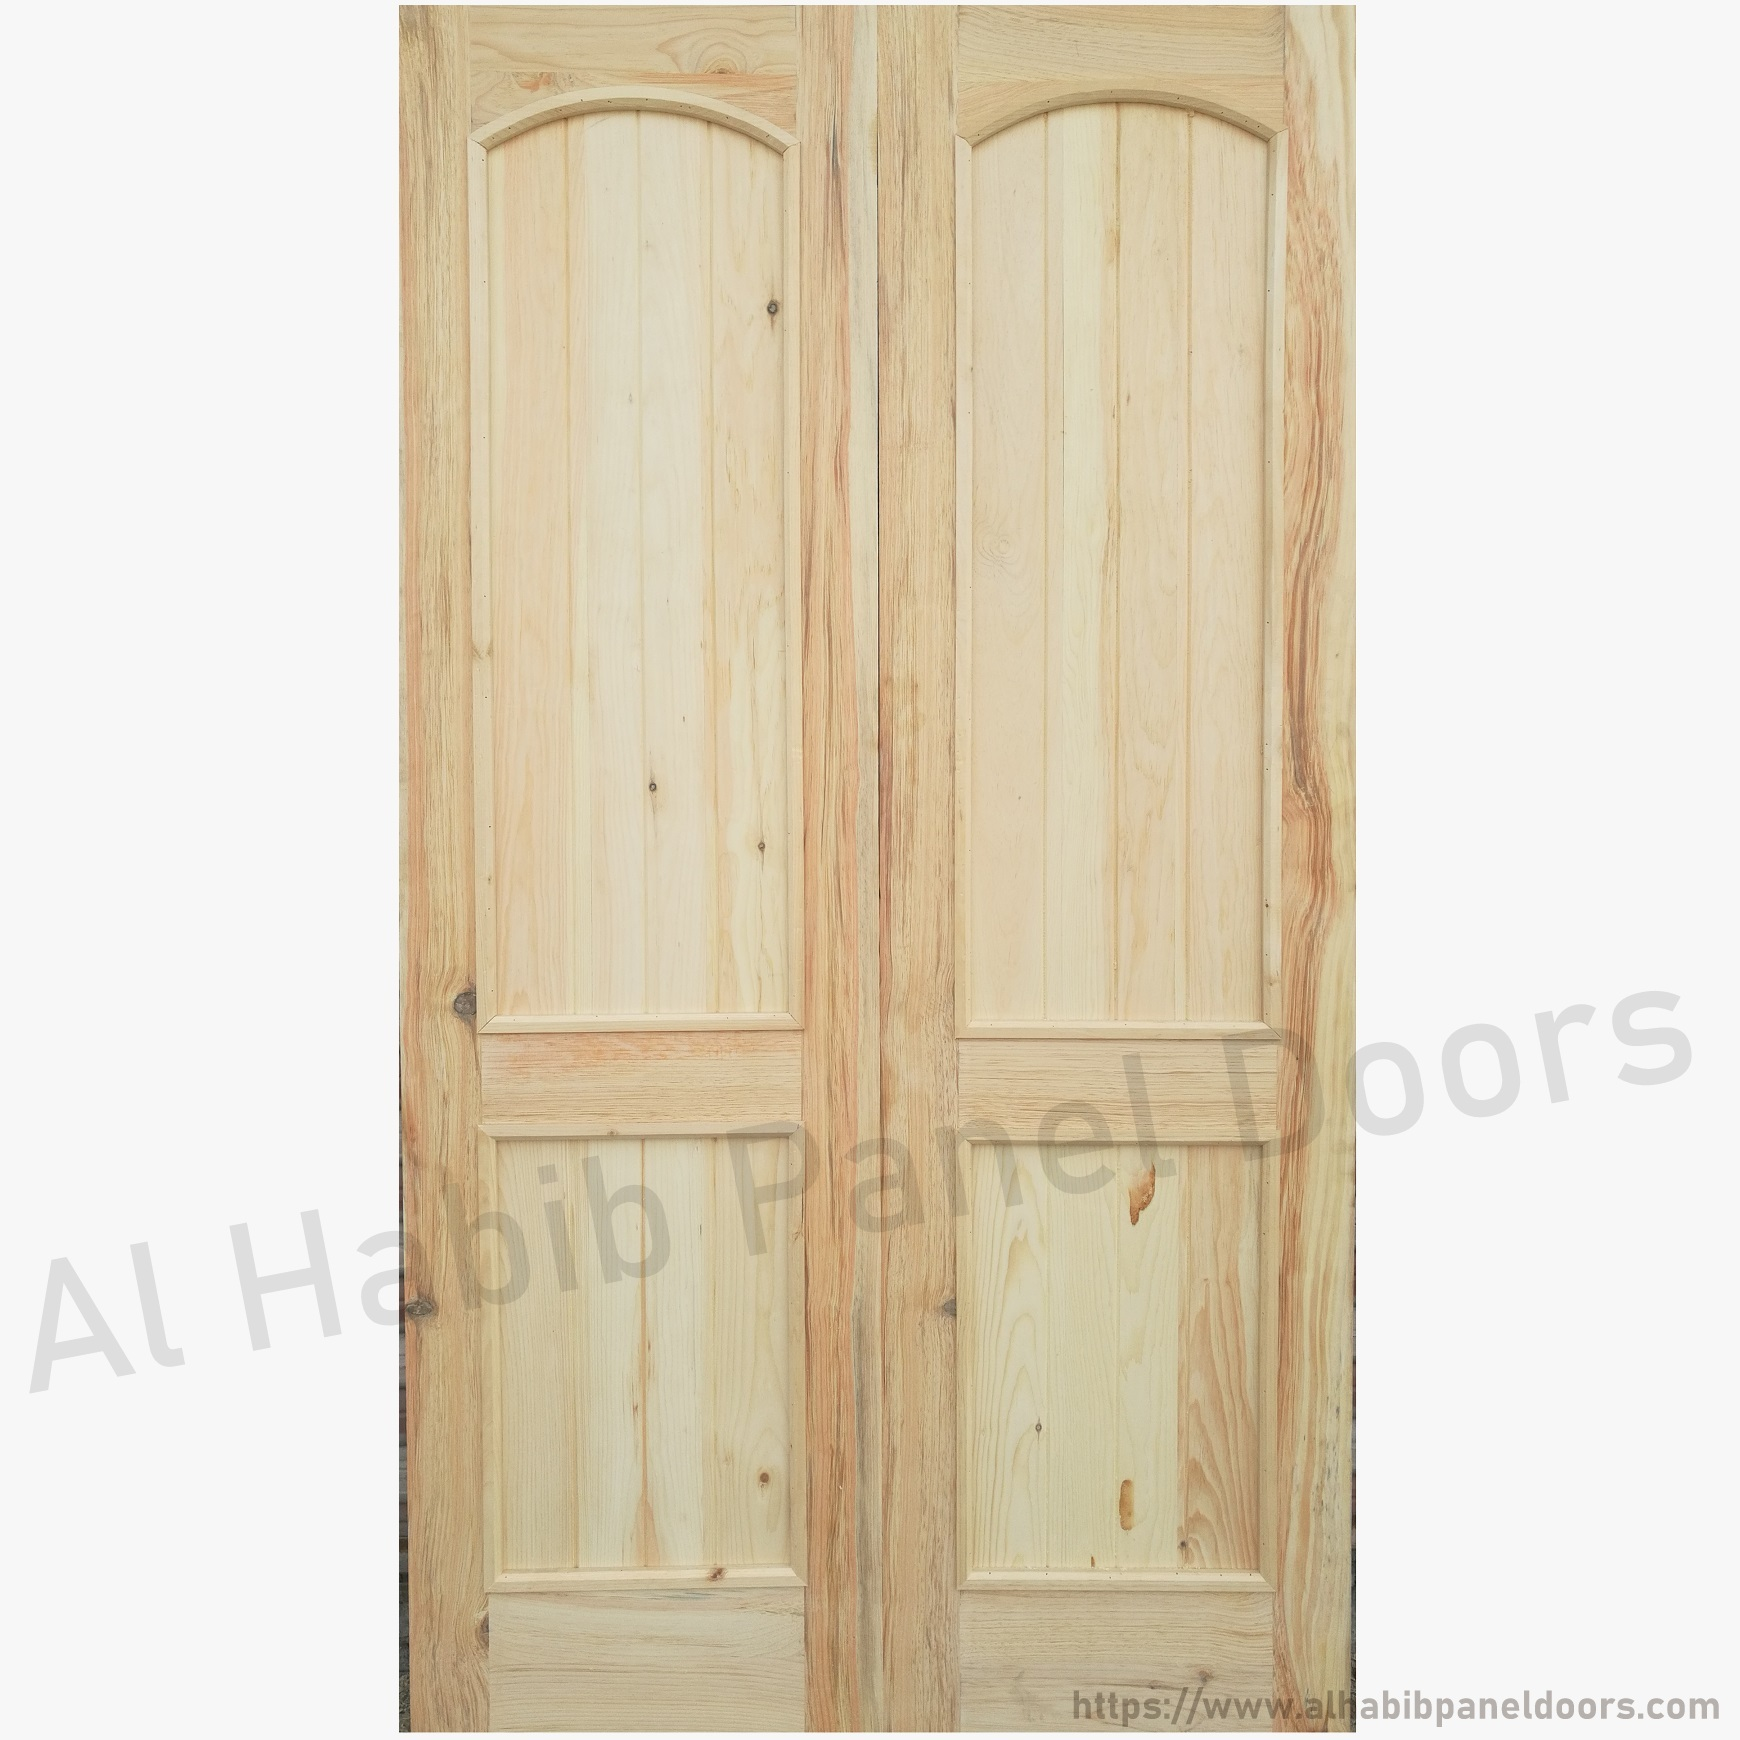 Main doors doors al habib panel doors for Latest wooden door designs 2016